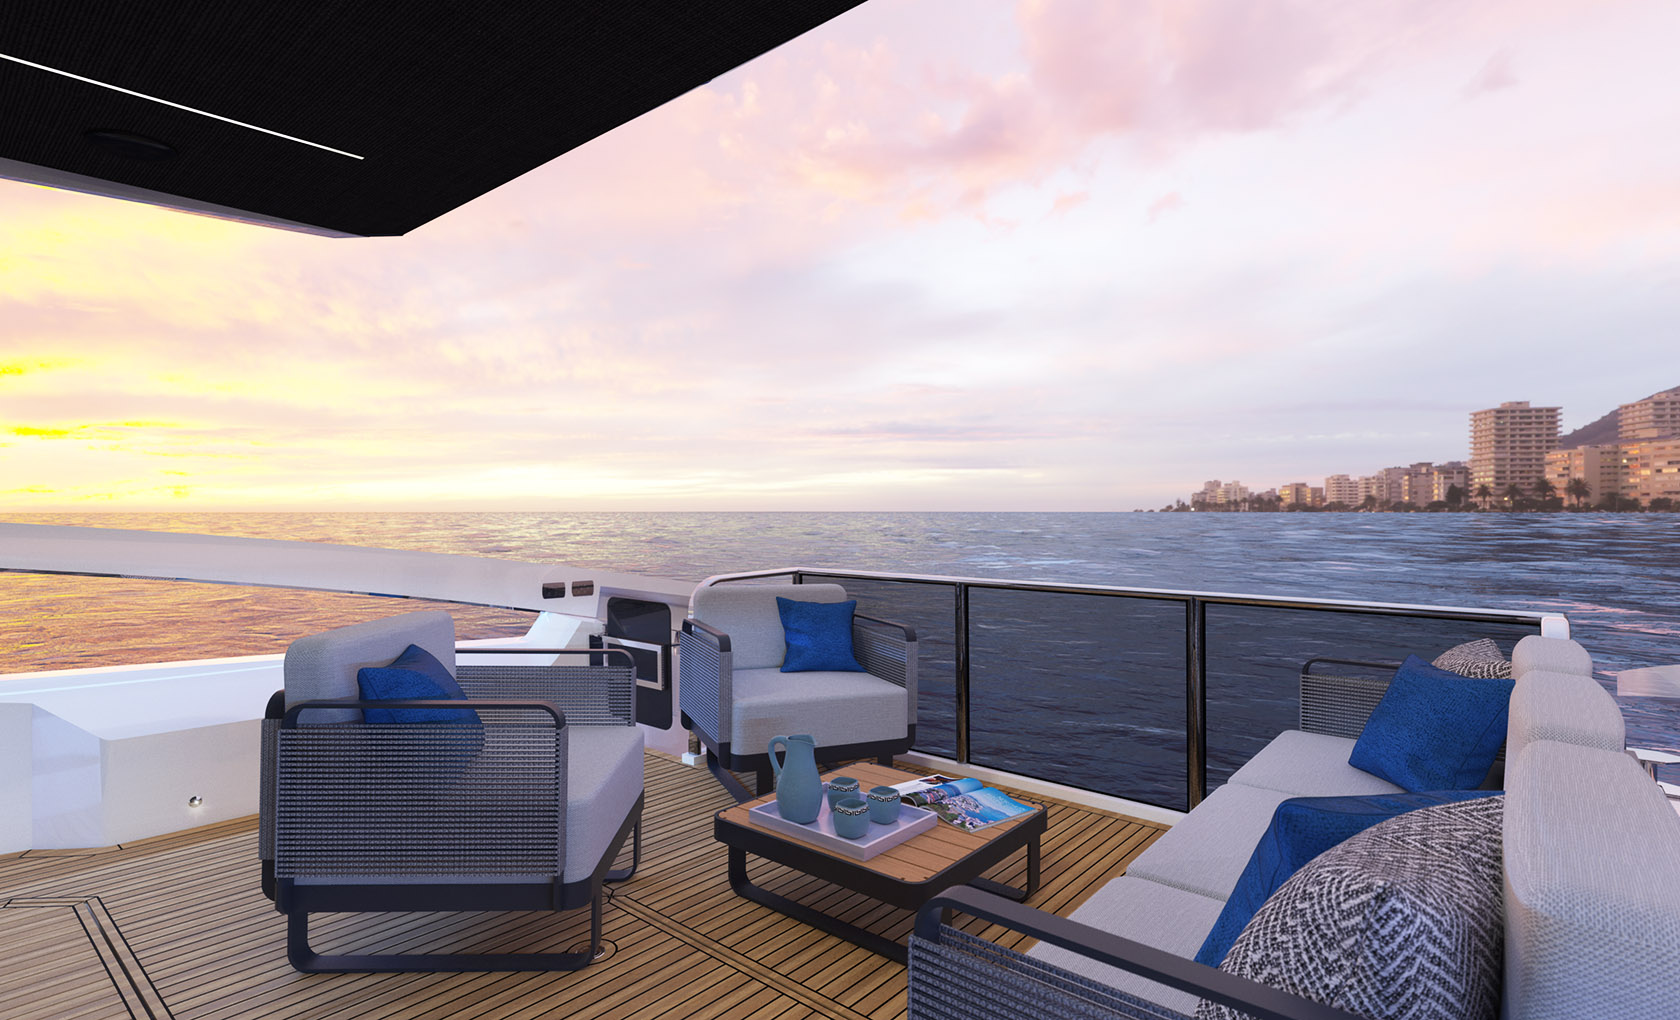 aft deck with sunset